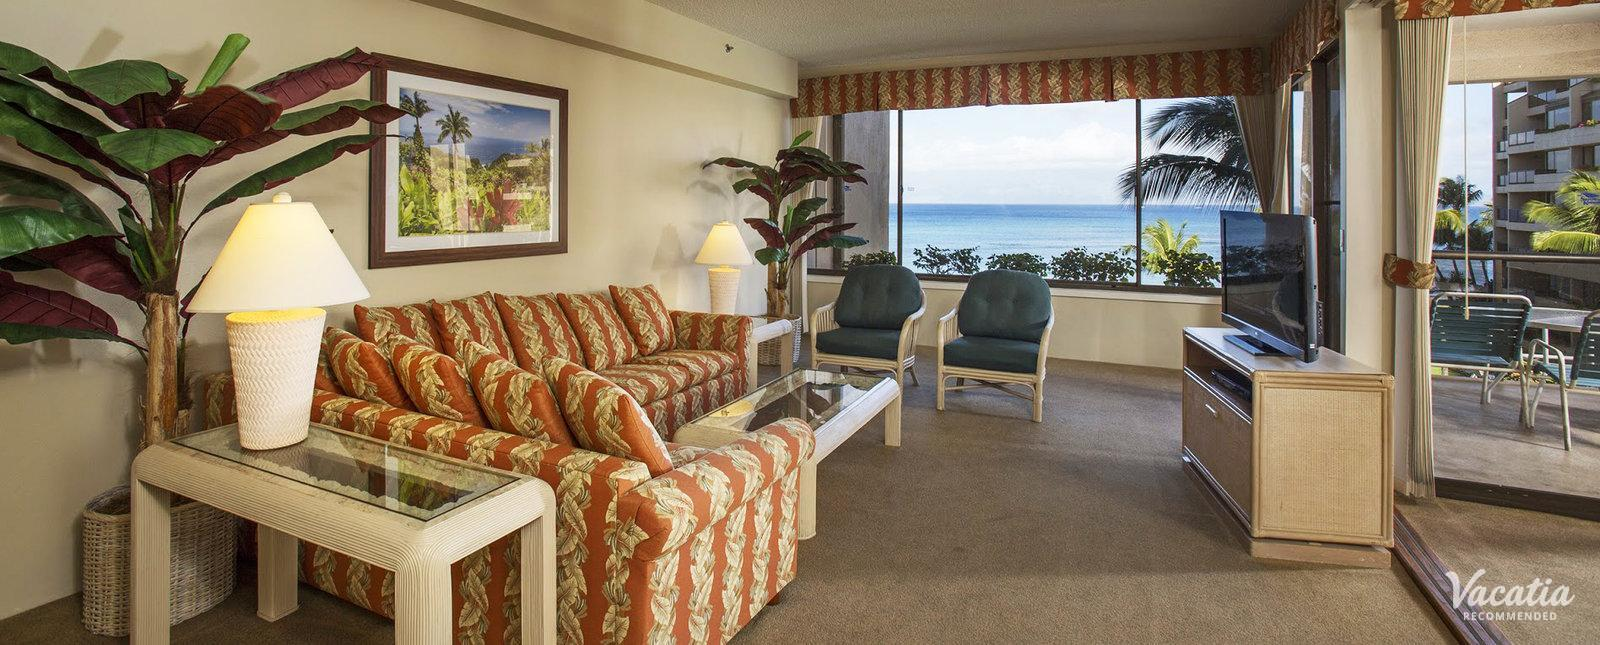 Sands of Kahana large vacation rentals